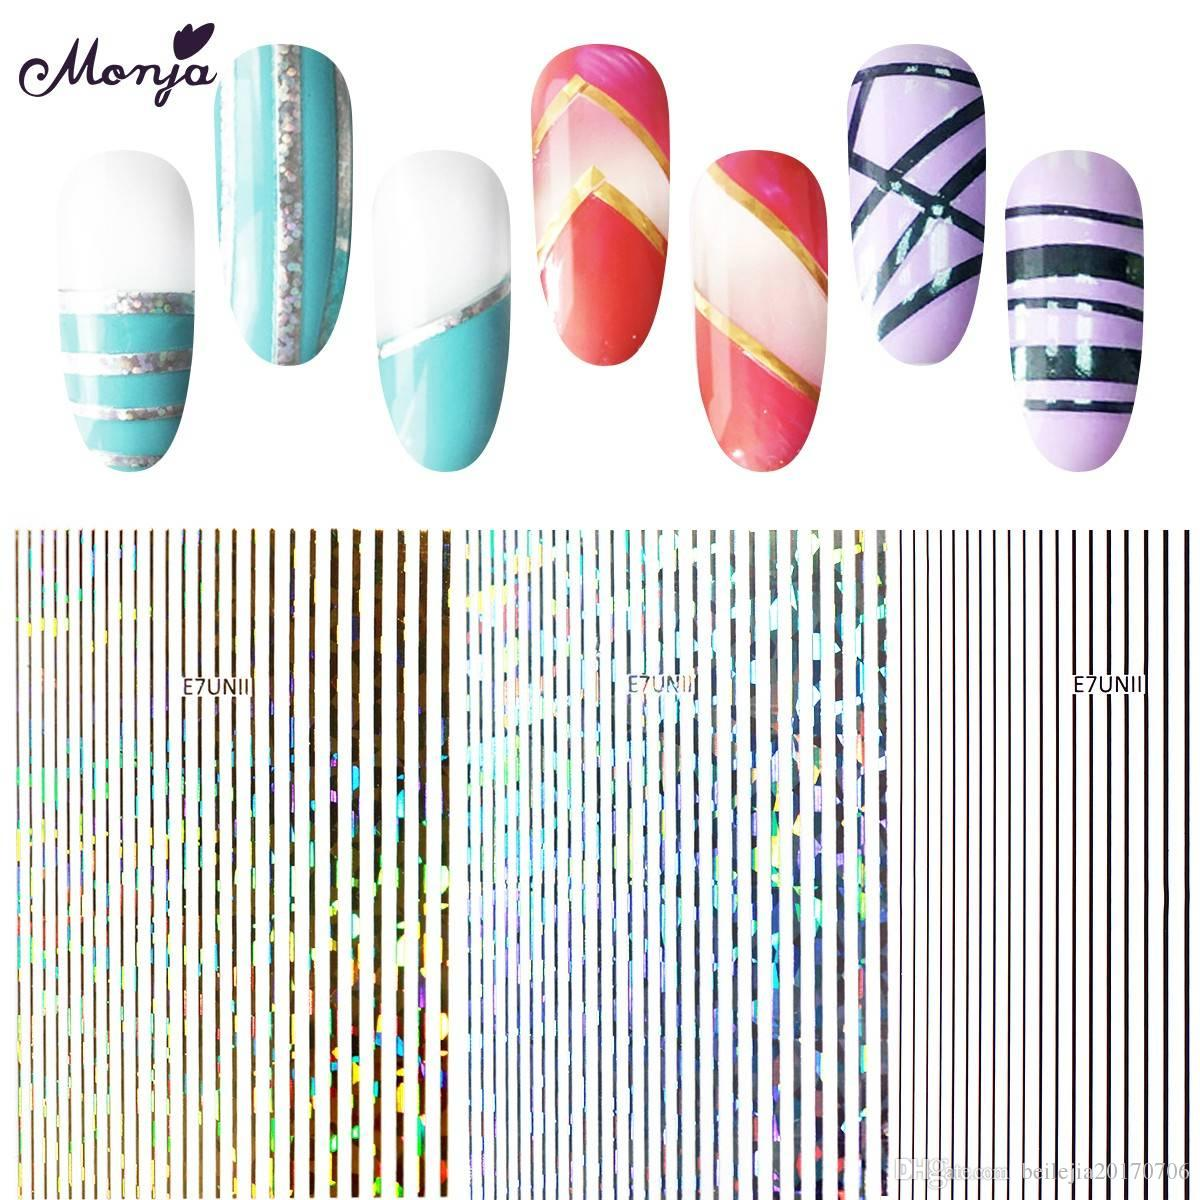 Monja 5 Colors Nail Art Gold Lines Strip Metal Foil Decals Stickers Wraps  Adhesive DIY Decoration Accessories